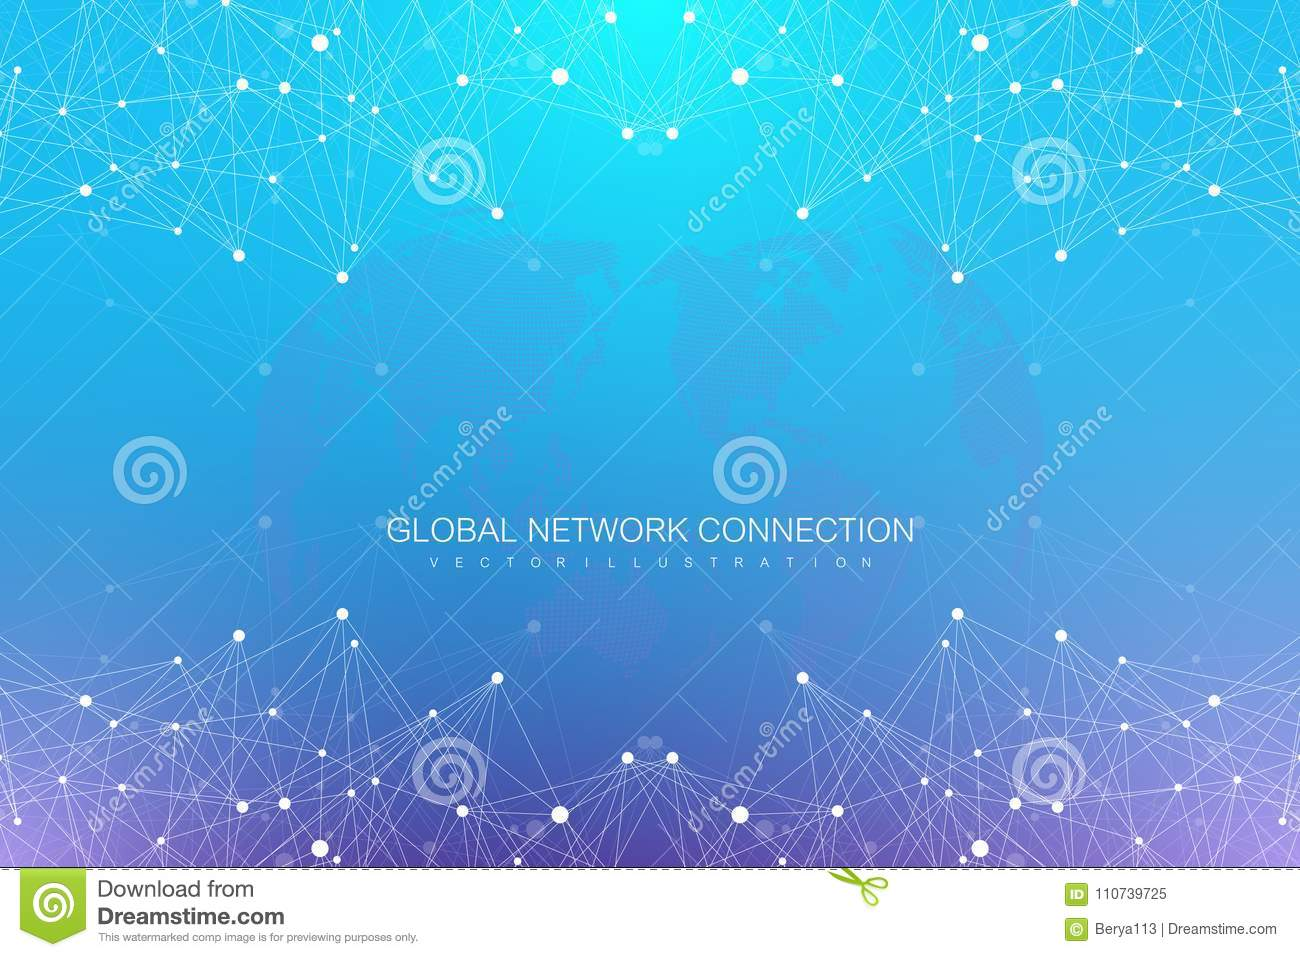 Geometric abstract background with connected lines and dots. Big data composition. Molecule and communication background